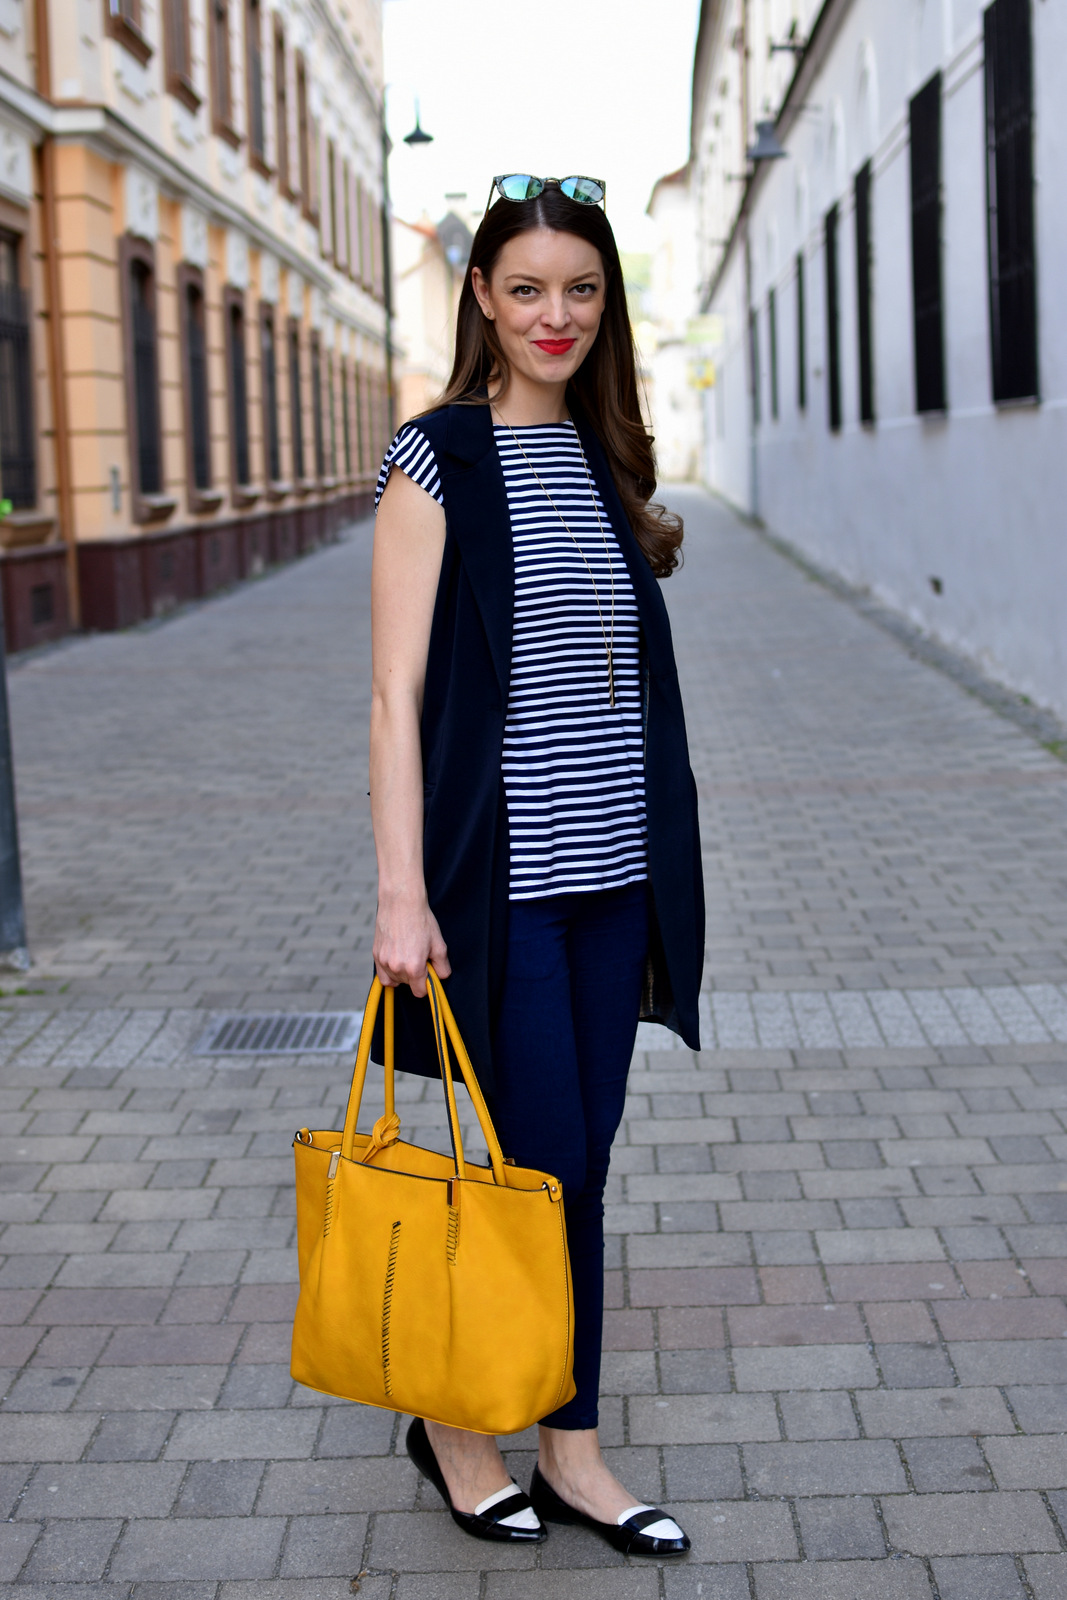 http://www.mademoiselleiva.com/2016/05/striped-t-shirt-with-long-vest.html